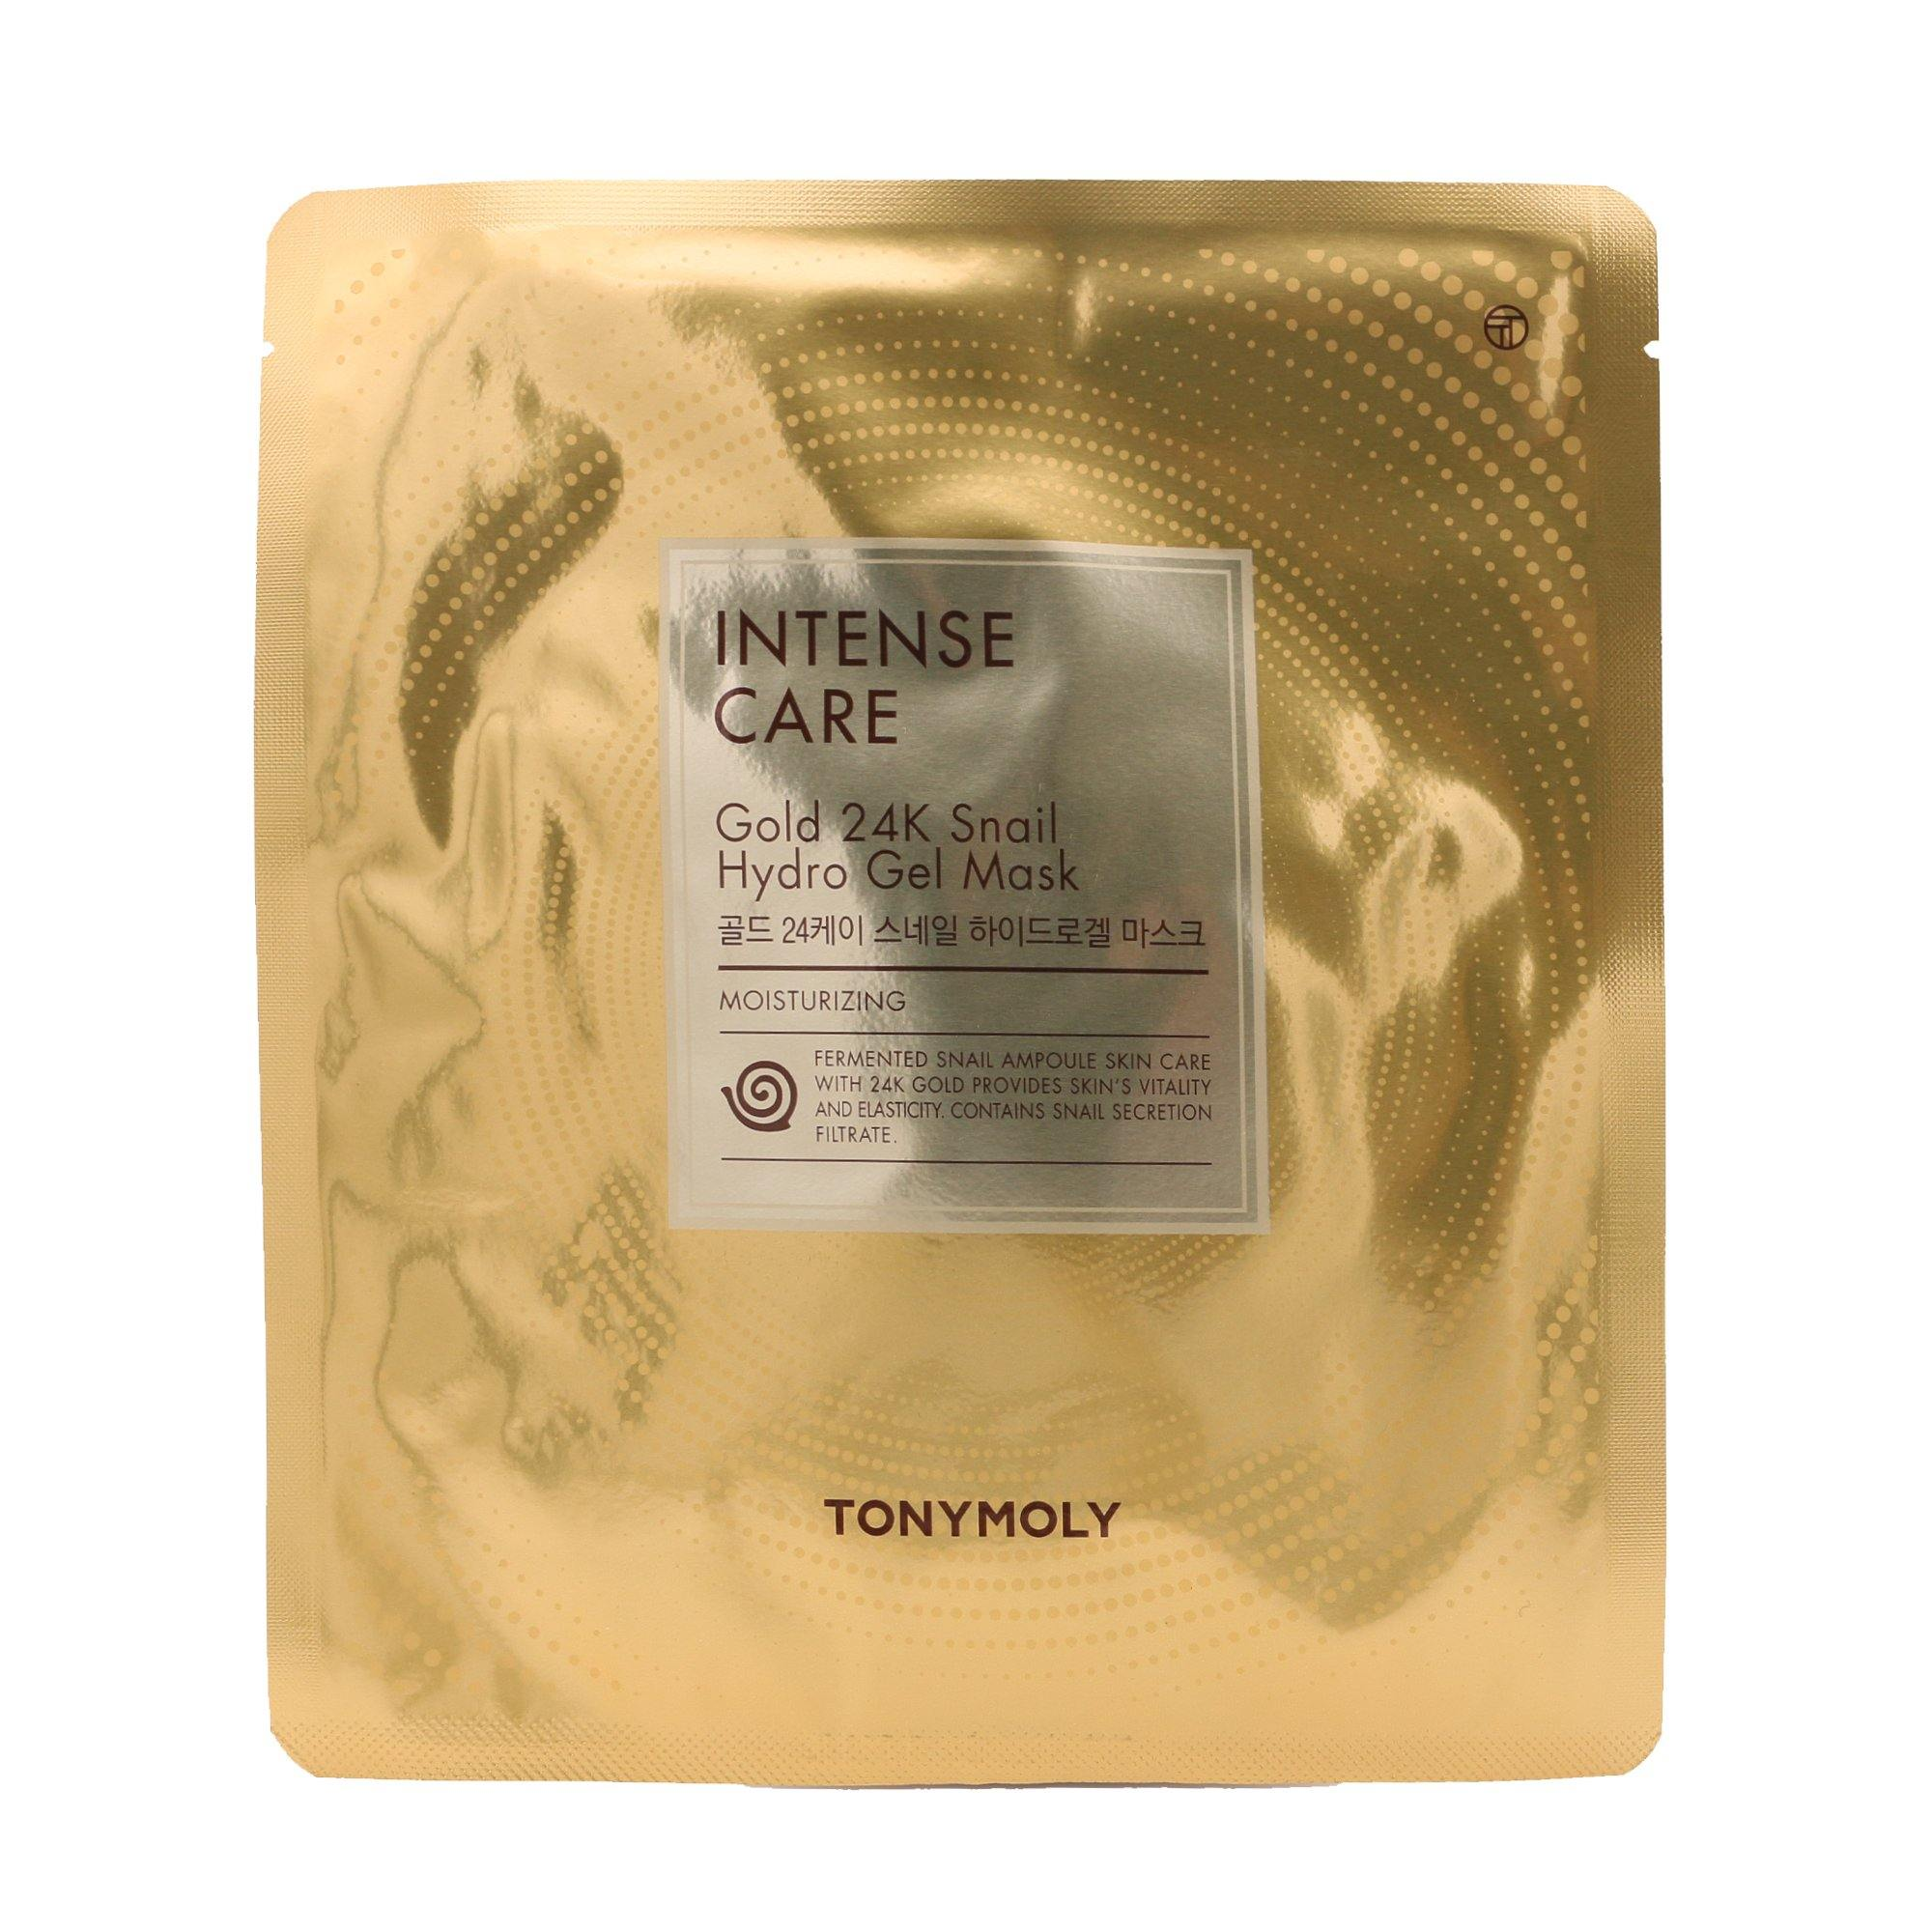 TONYMOLY Intense Care Gold 24k Snail Hydrogel Mask - TONYMOLY OFFICIAL